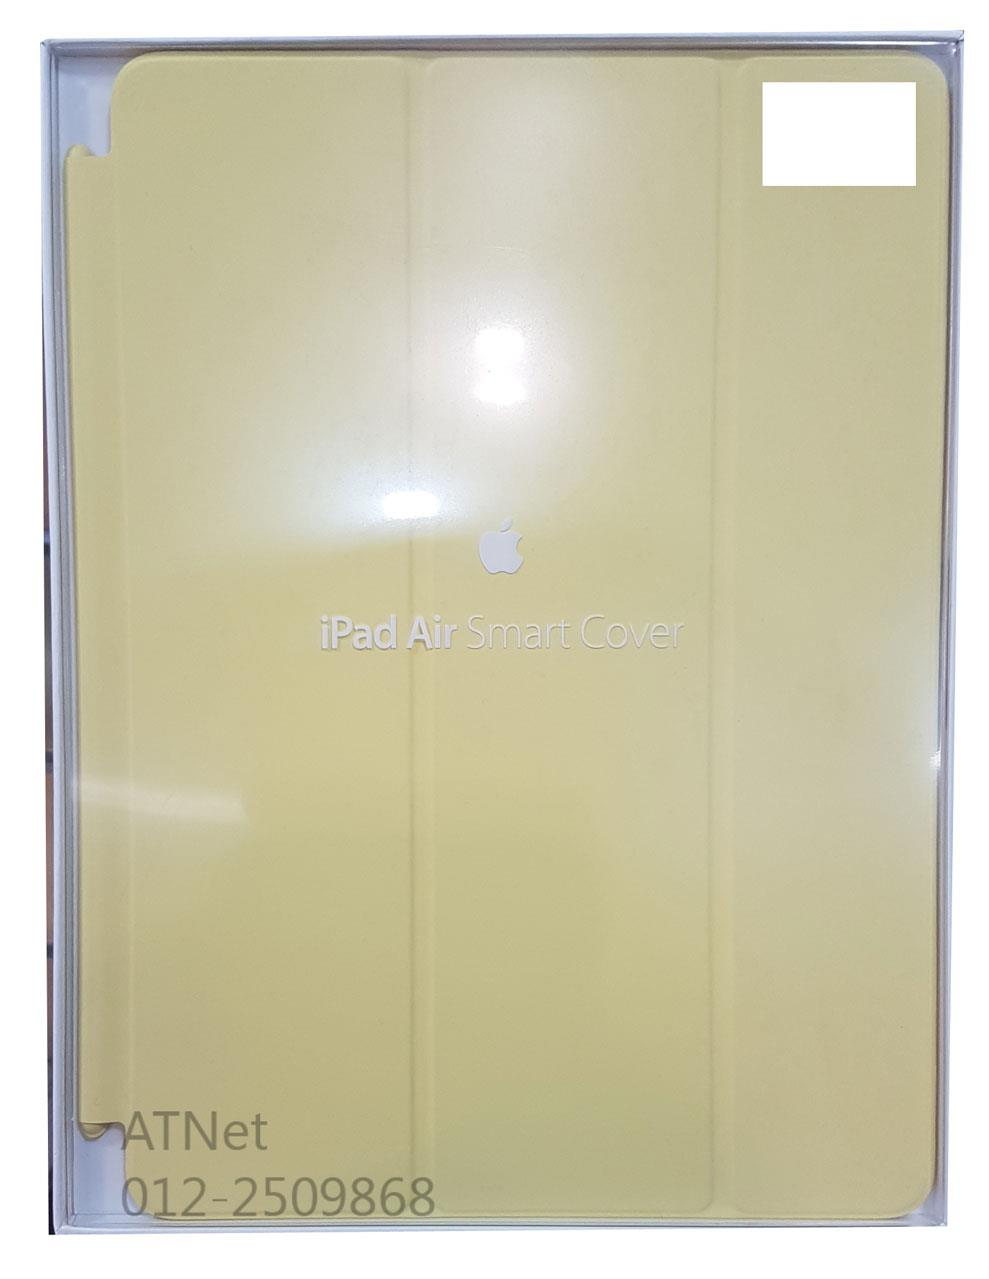 APPLE SMART COVER FOR IPAD AIR CASE (YELLOW)